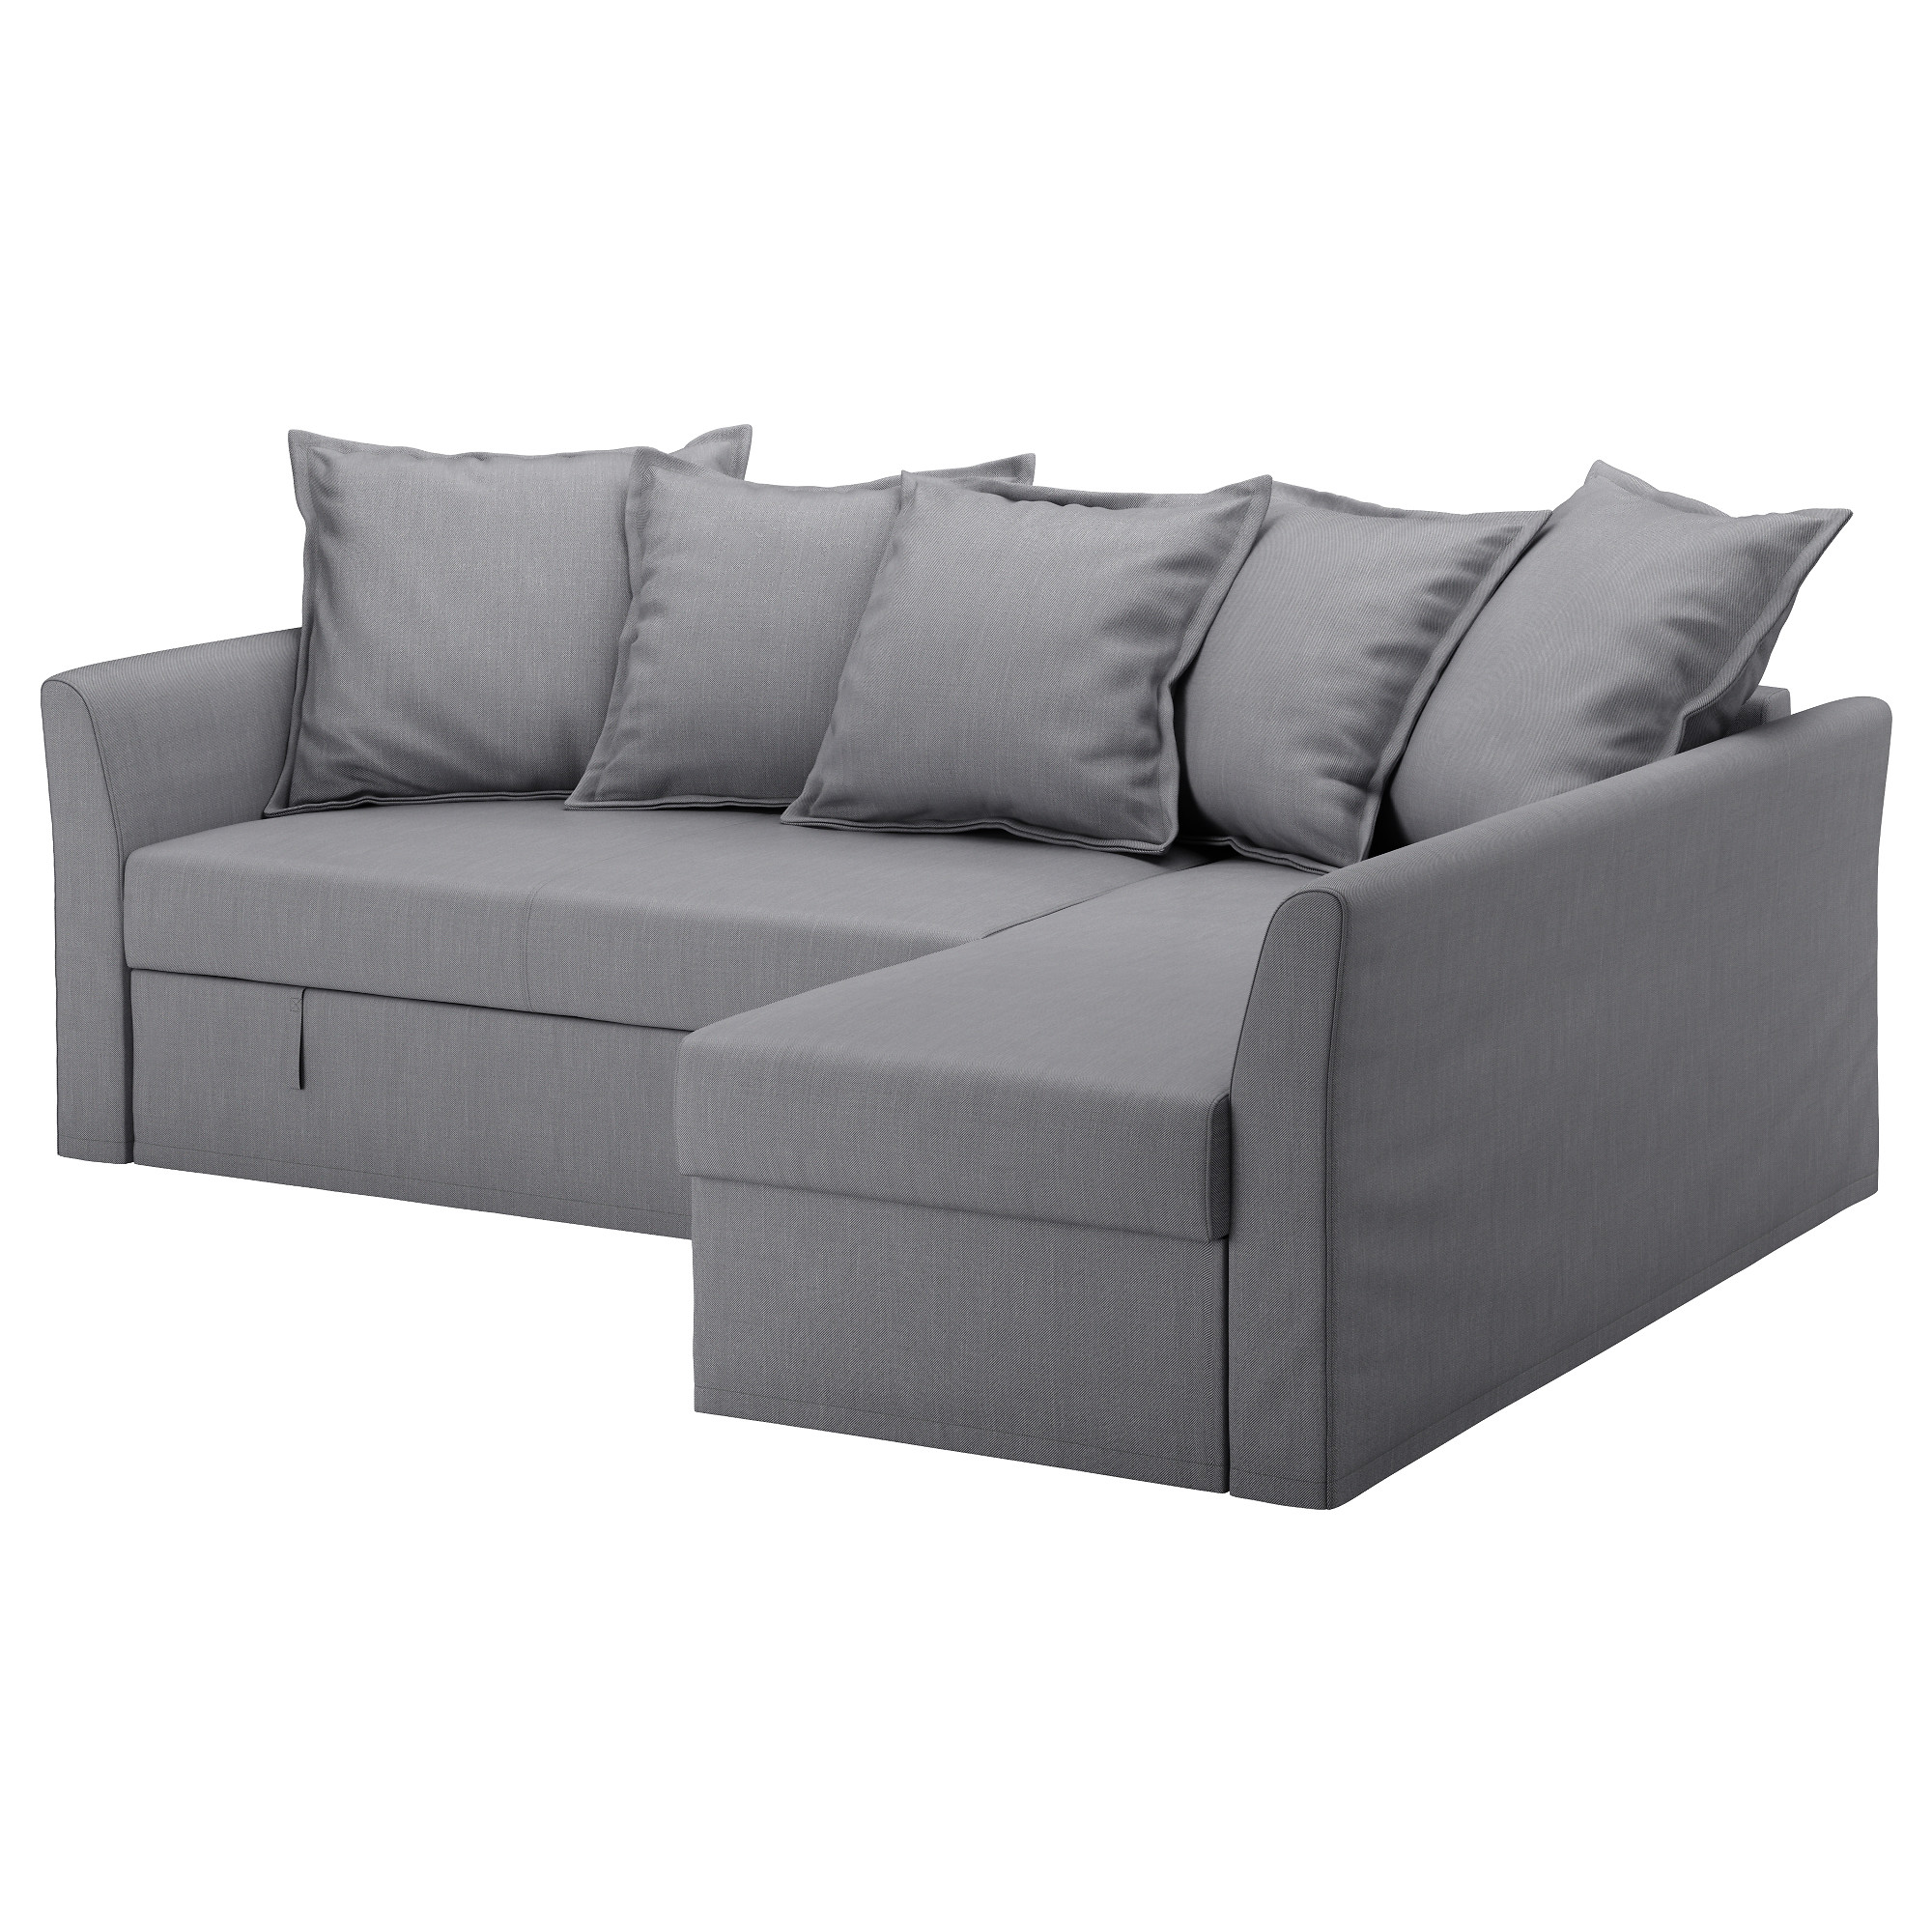 sofa bed covers dark gray slipcover holmsund cover for sleeper sectional 3 seat nordvalla medium ikea you can place the chaise section to left or right of